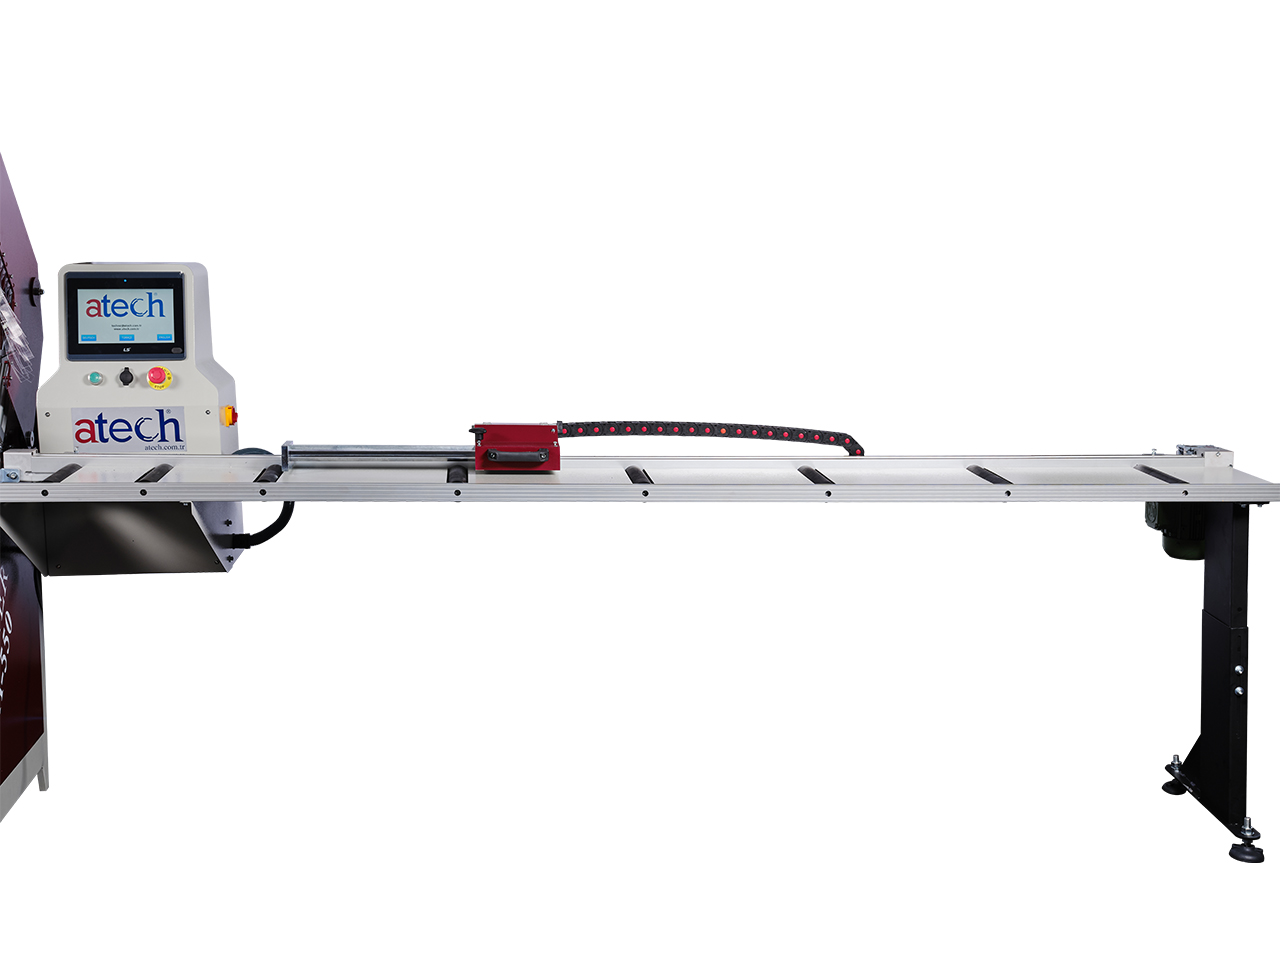 CRATER-06 A550 is a heavy duty 22 (550 mm) automatic aluminium profile upcut miter saw (16)